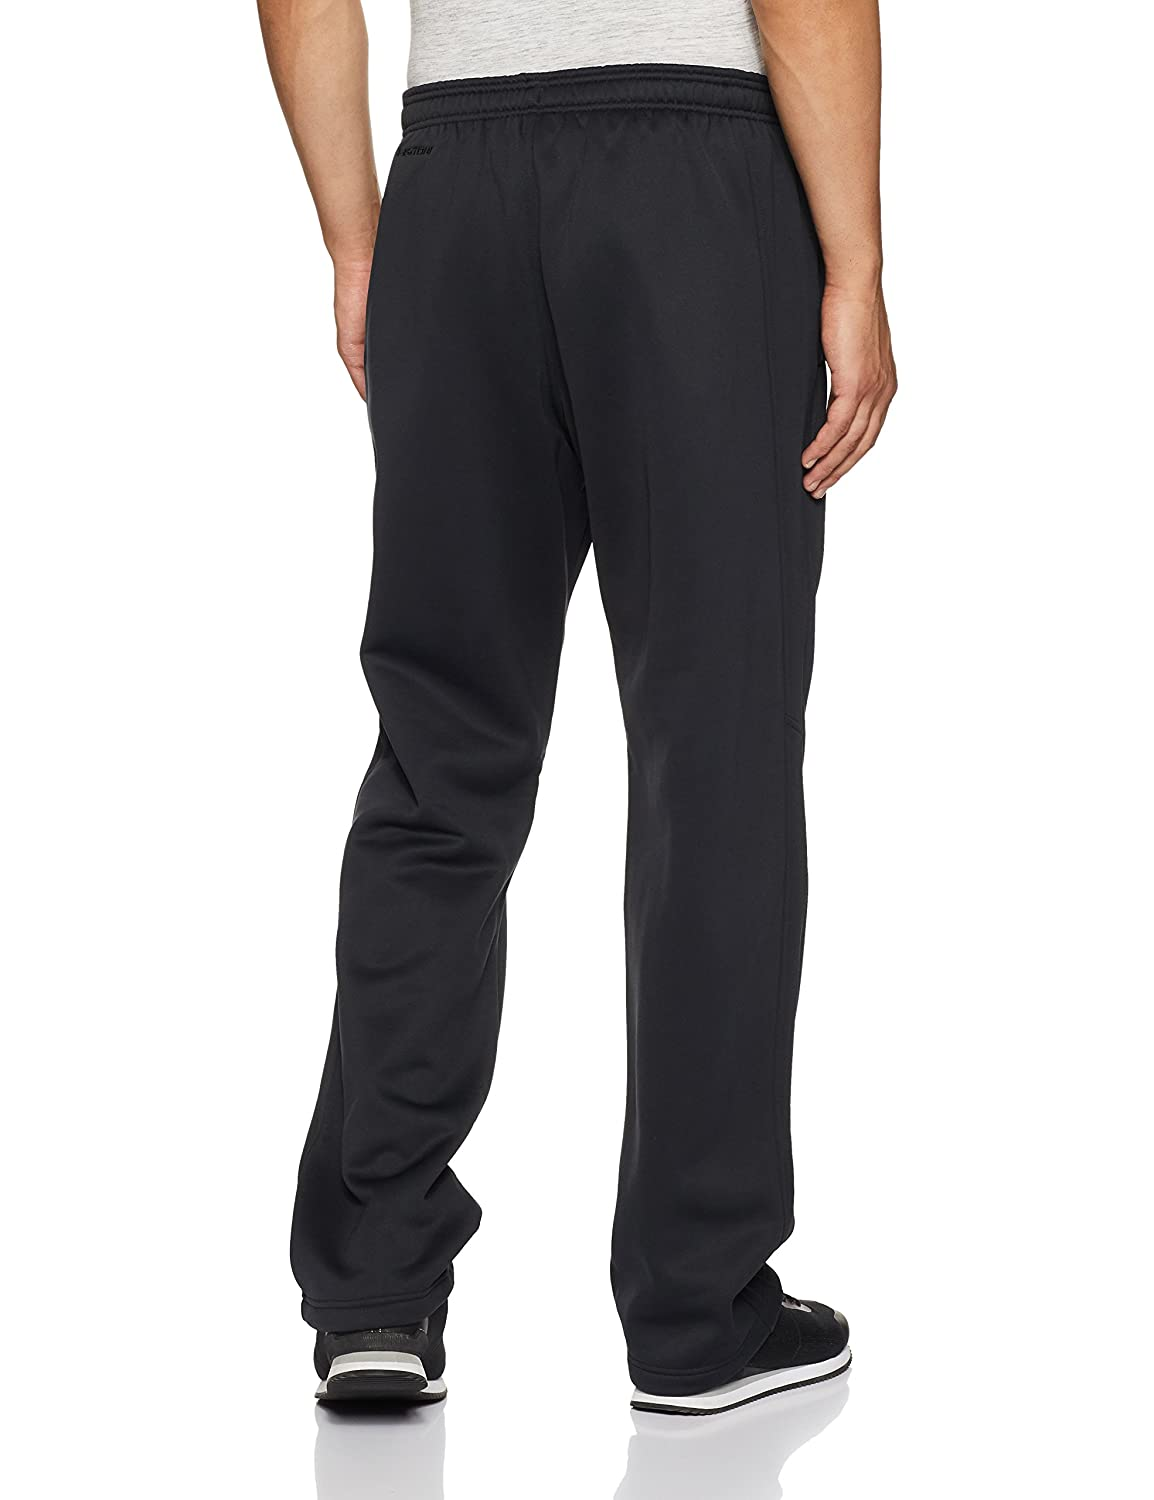 5eb3509f45b0 Buy Under Armour Men s Storm Armour Fleece Pants Online at Low Prices in  India - Amazon.in